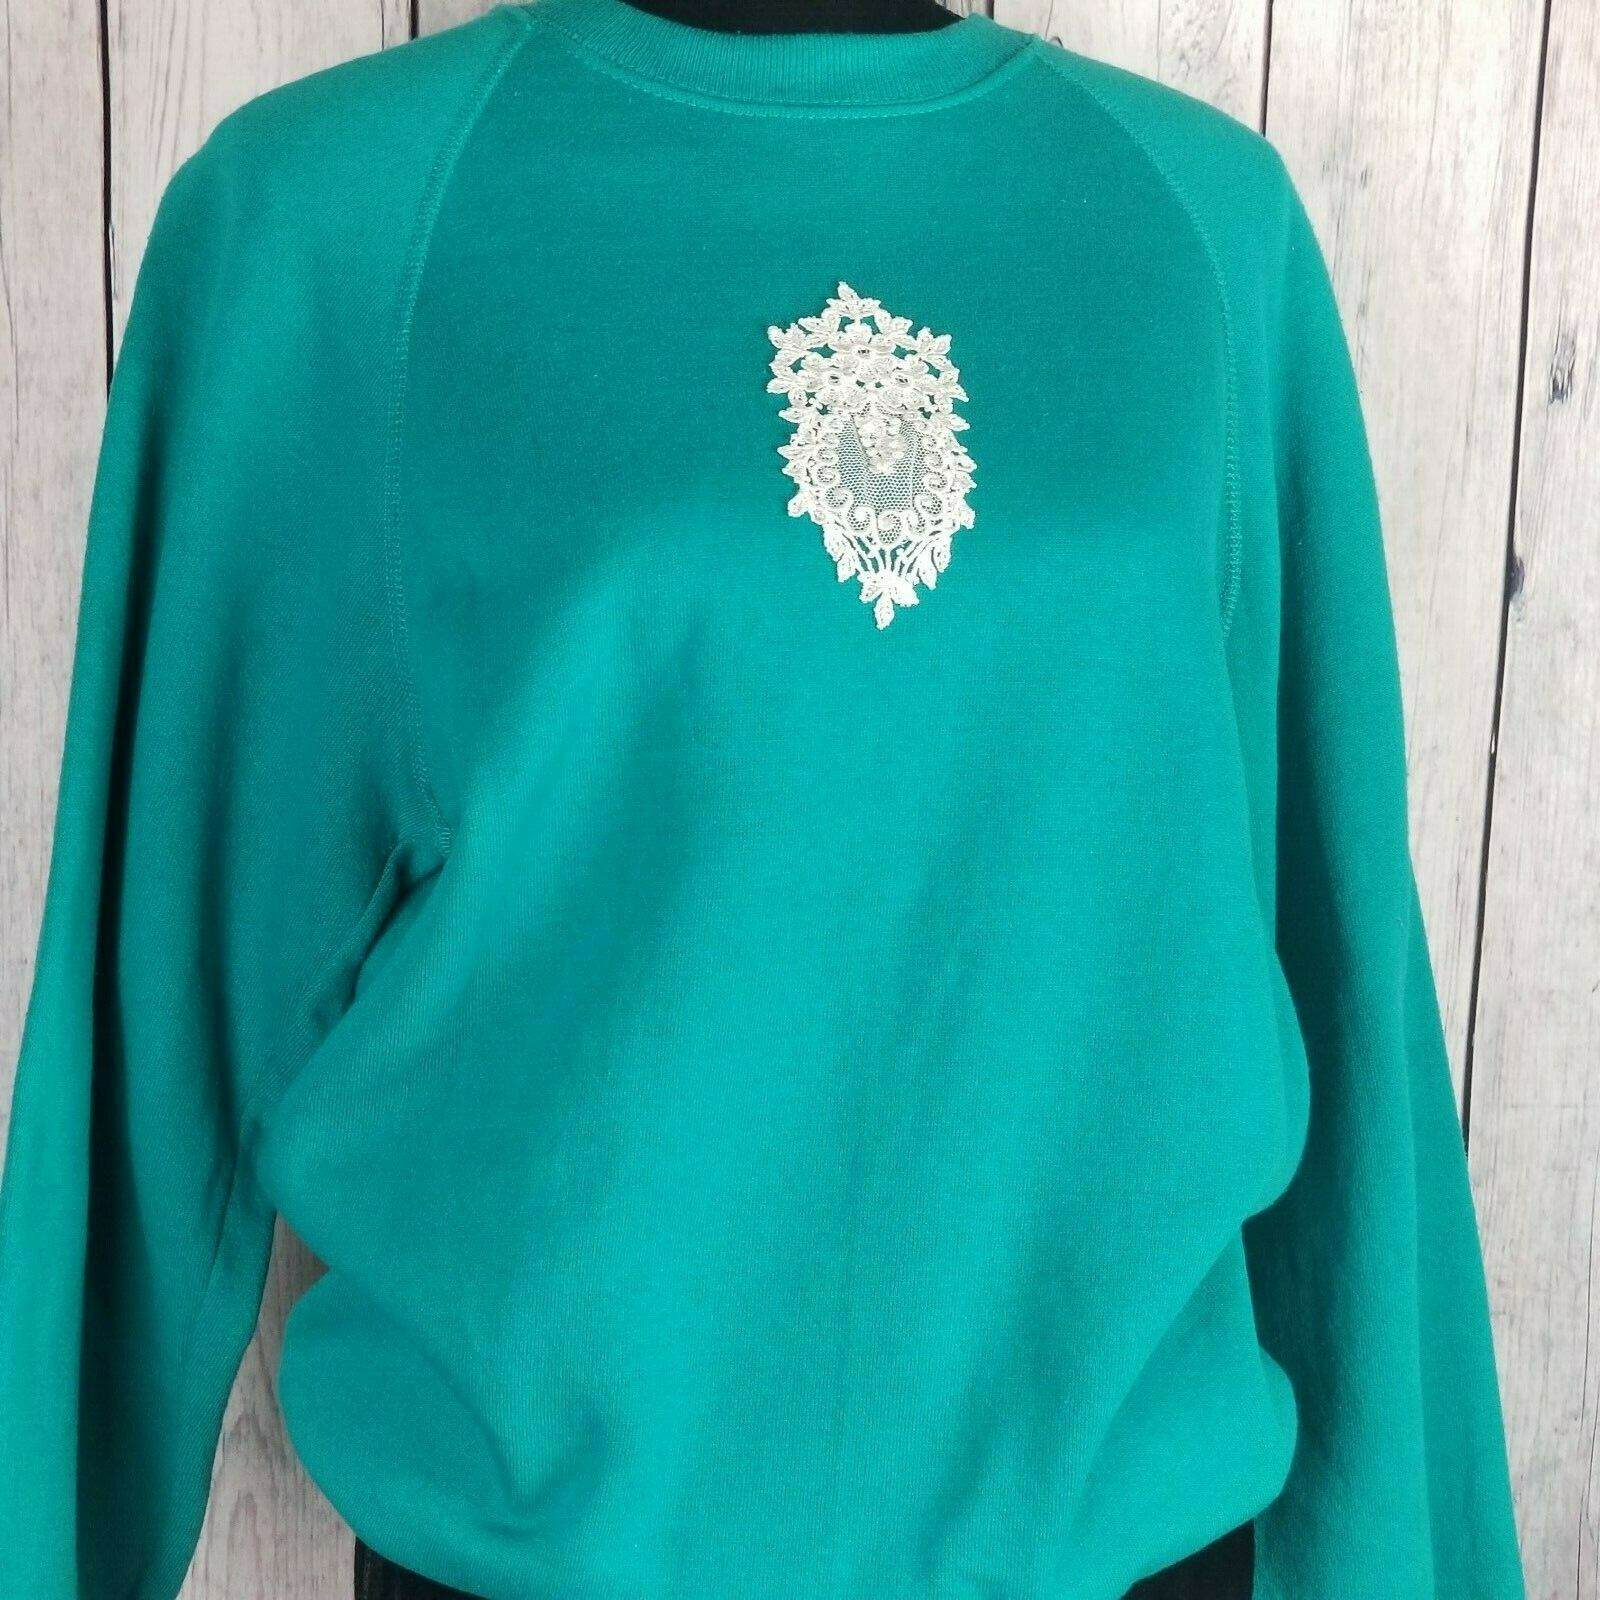 Sturdy Sweats By Lee Teal Textured Sweatshirt Large Vintage Lace Applique